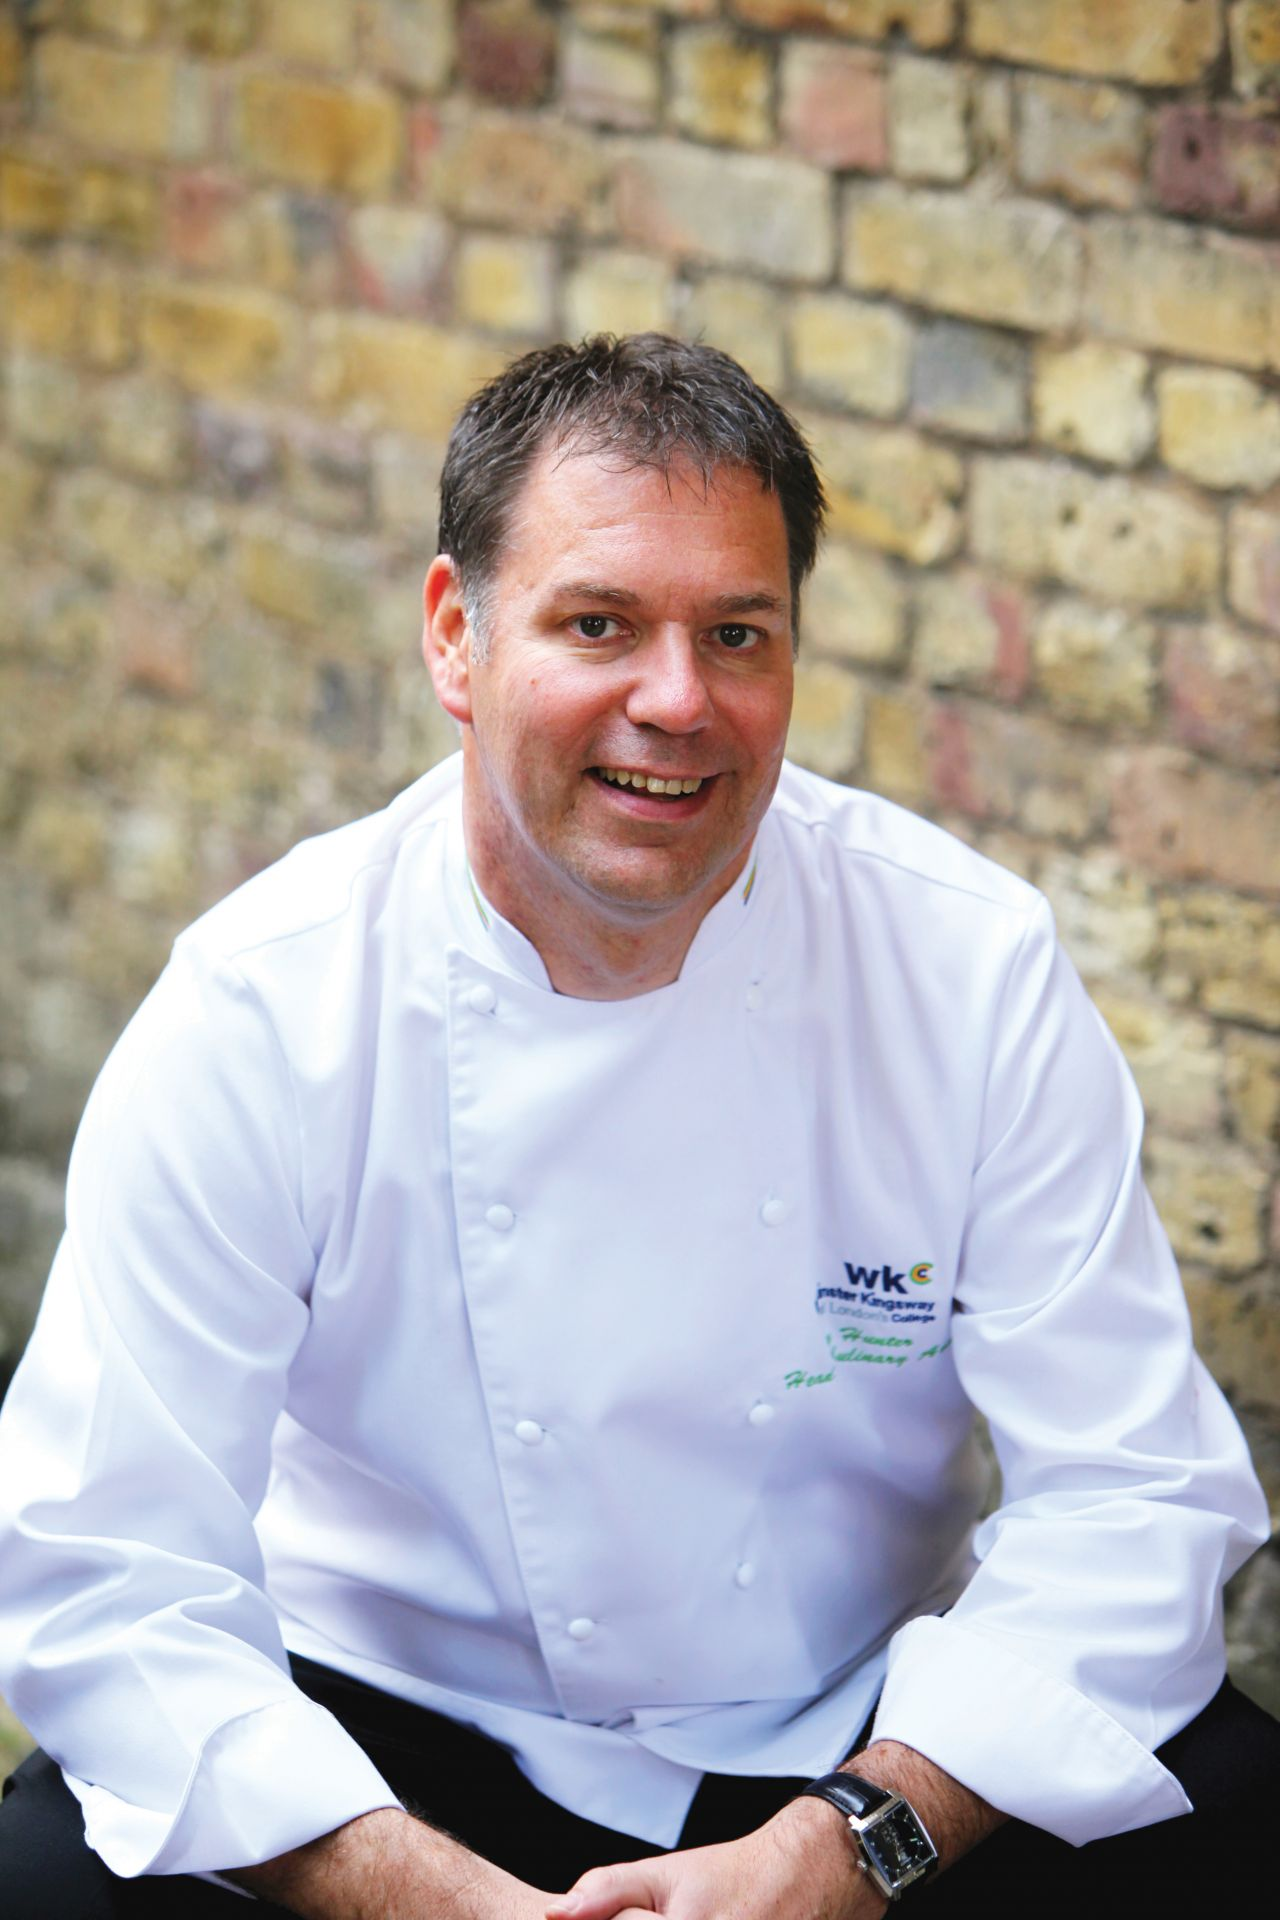 Gary Hunter - Vice Principal for Westminster Kingsway College Hospitality, Culinary Arts and Adult LearningGary has over 20 years of experience, working across all aspects of the education sector as a leader in the field of culinary, hospitality, vocational and adult education. His role as Vice Principal at Westminster Kingsway gives him the opportunity to lead the college in all areas of vocational growth. A published author in 'blended learning', Gary leads the Higher Education area to secure strong and professional pathways for students to develop their careers, working directly with leading industry associations to support this